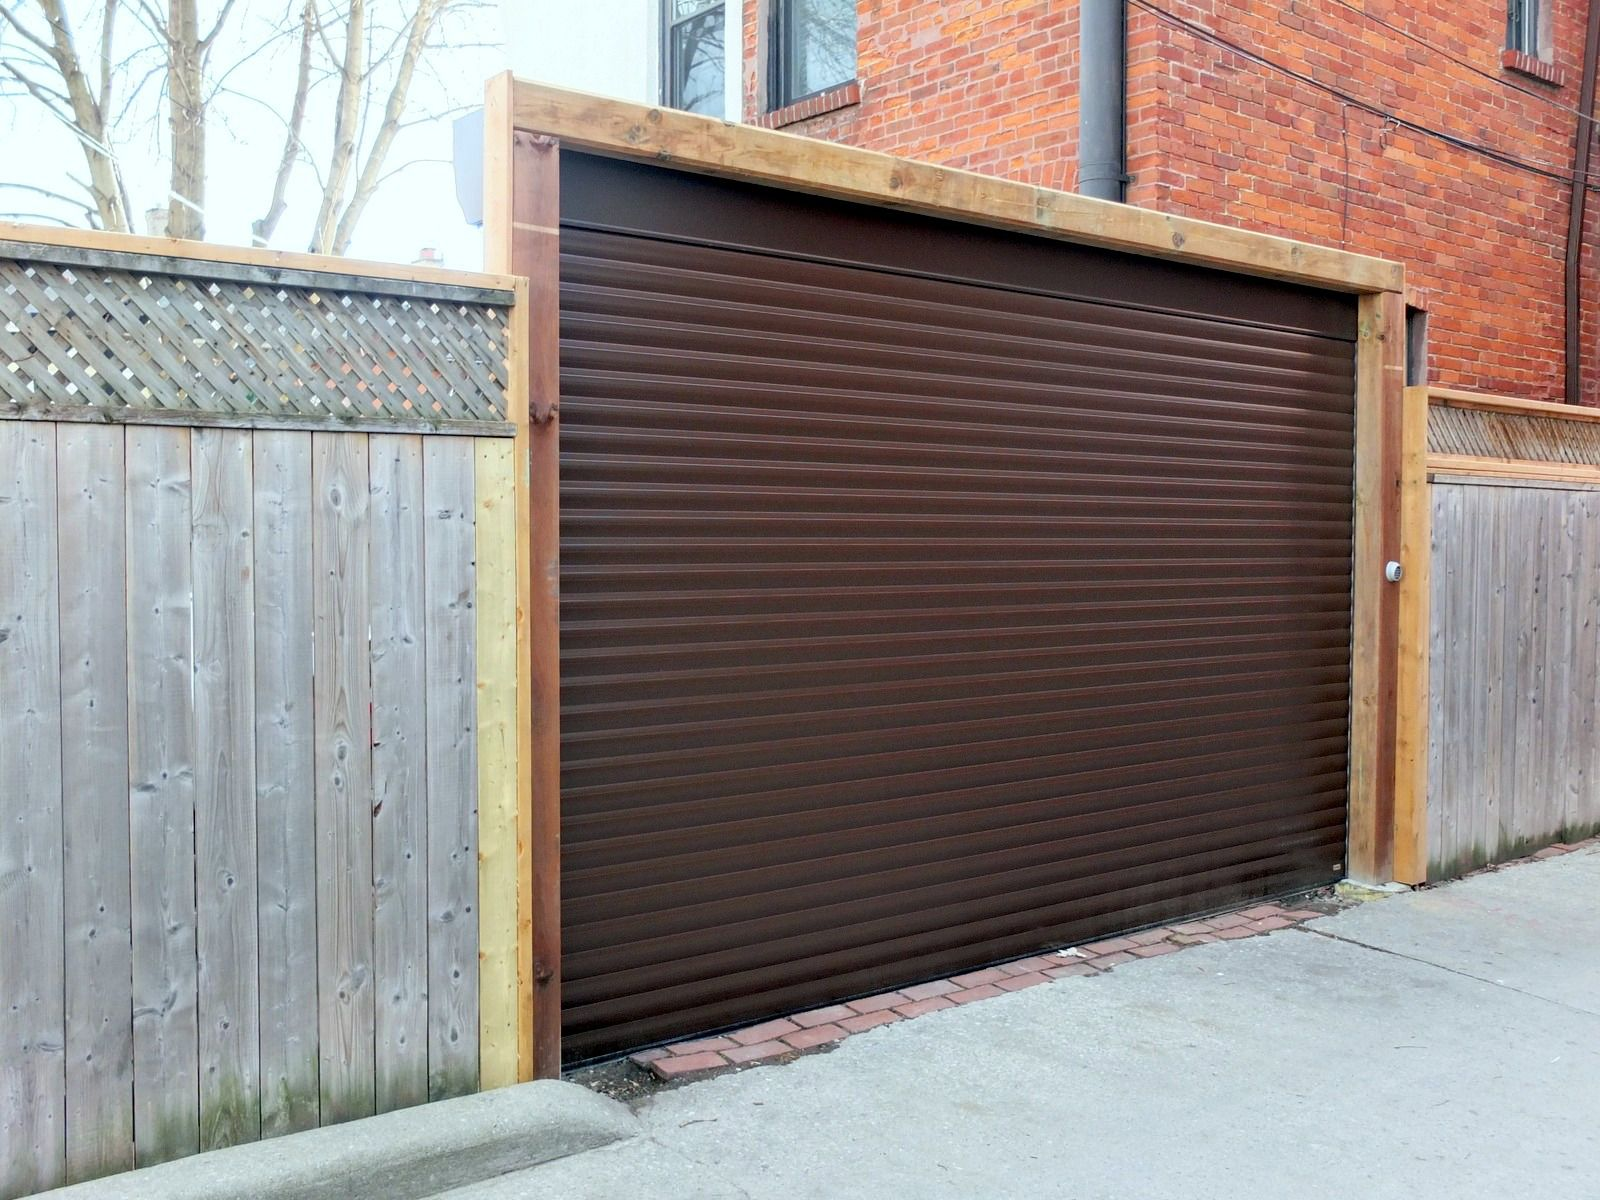 45 Roll Up Garage Door 9 Corrugated Garage Doors Green Corrugated